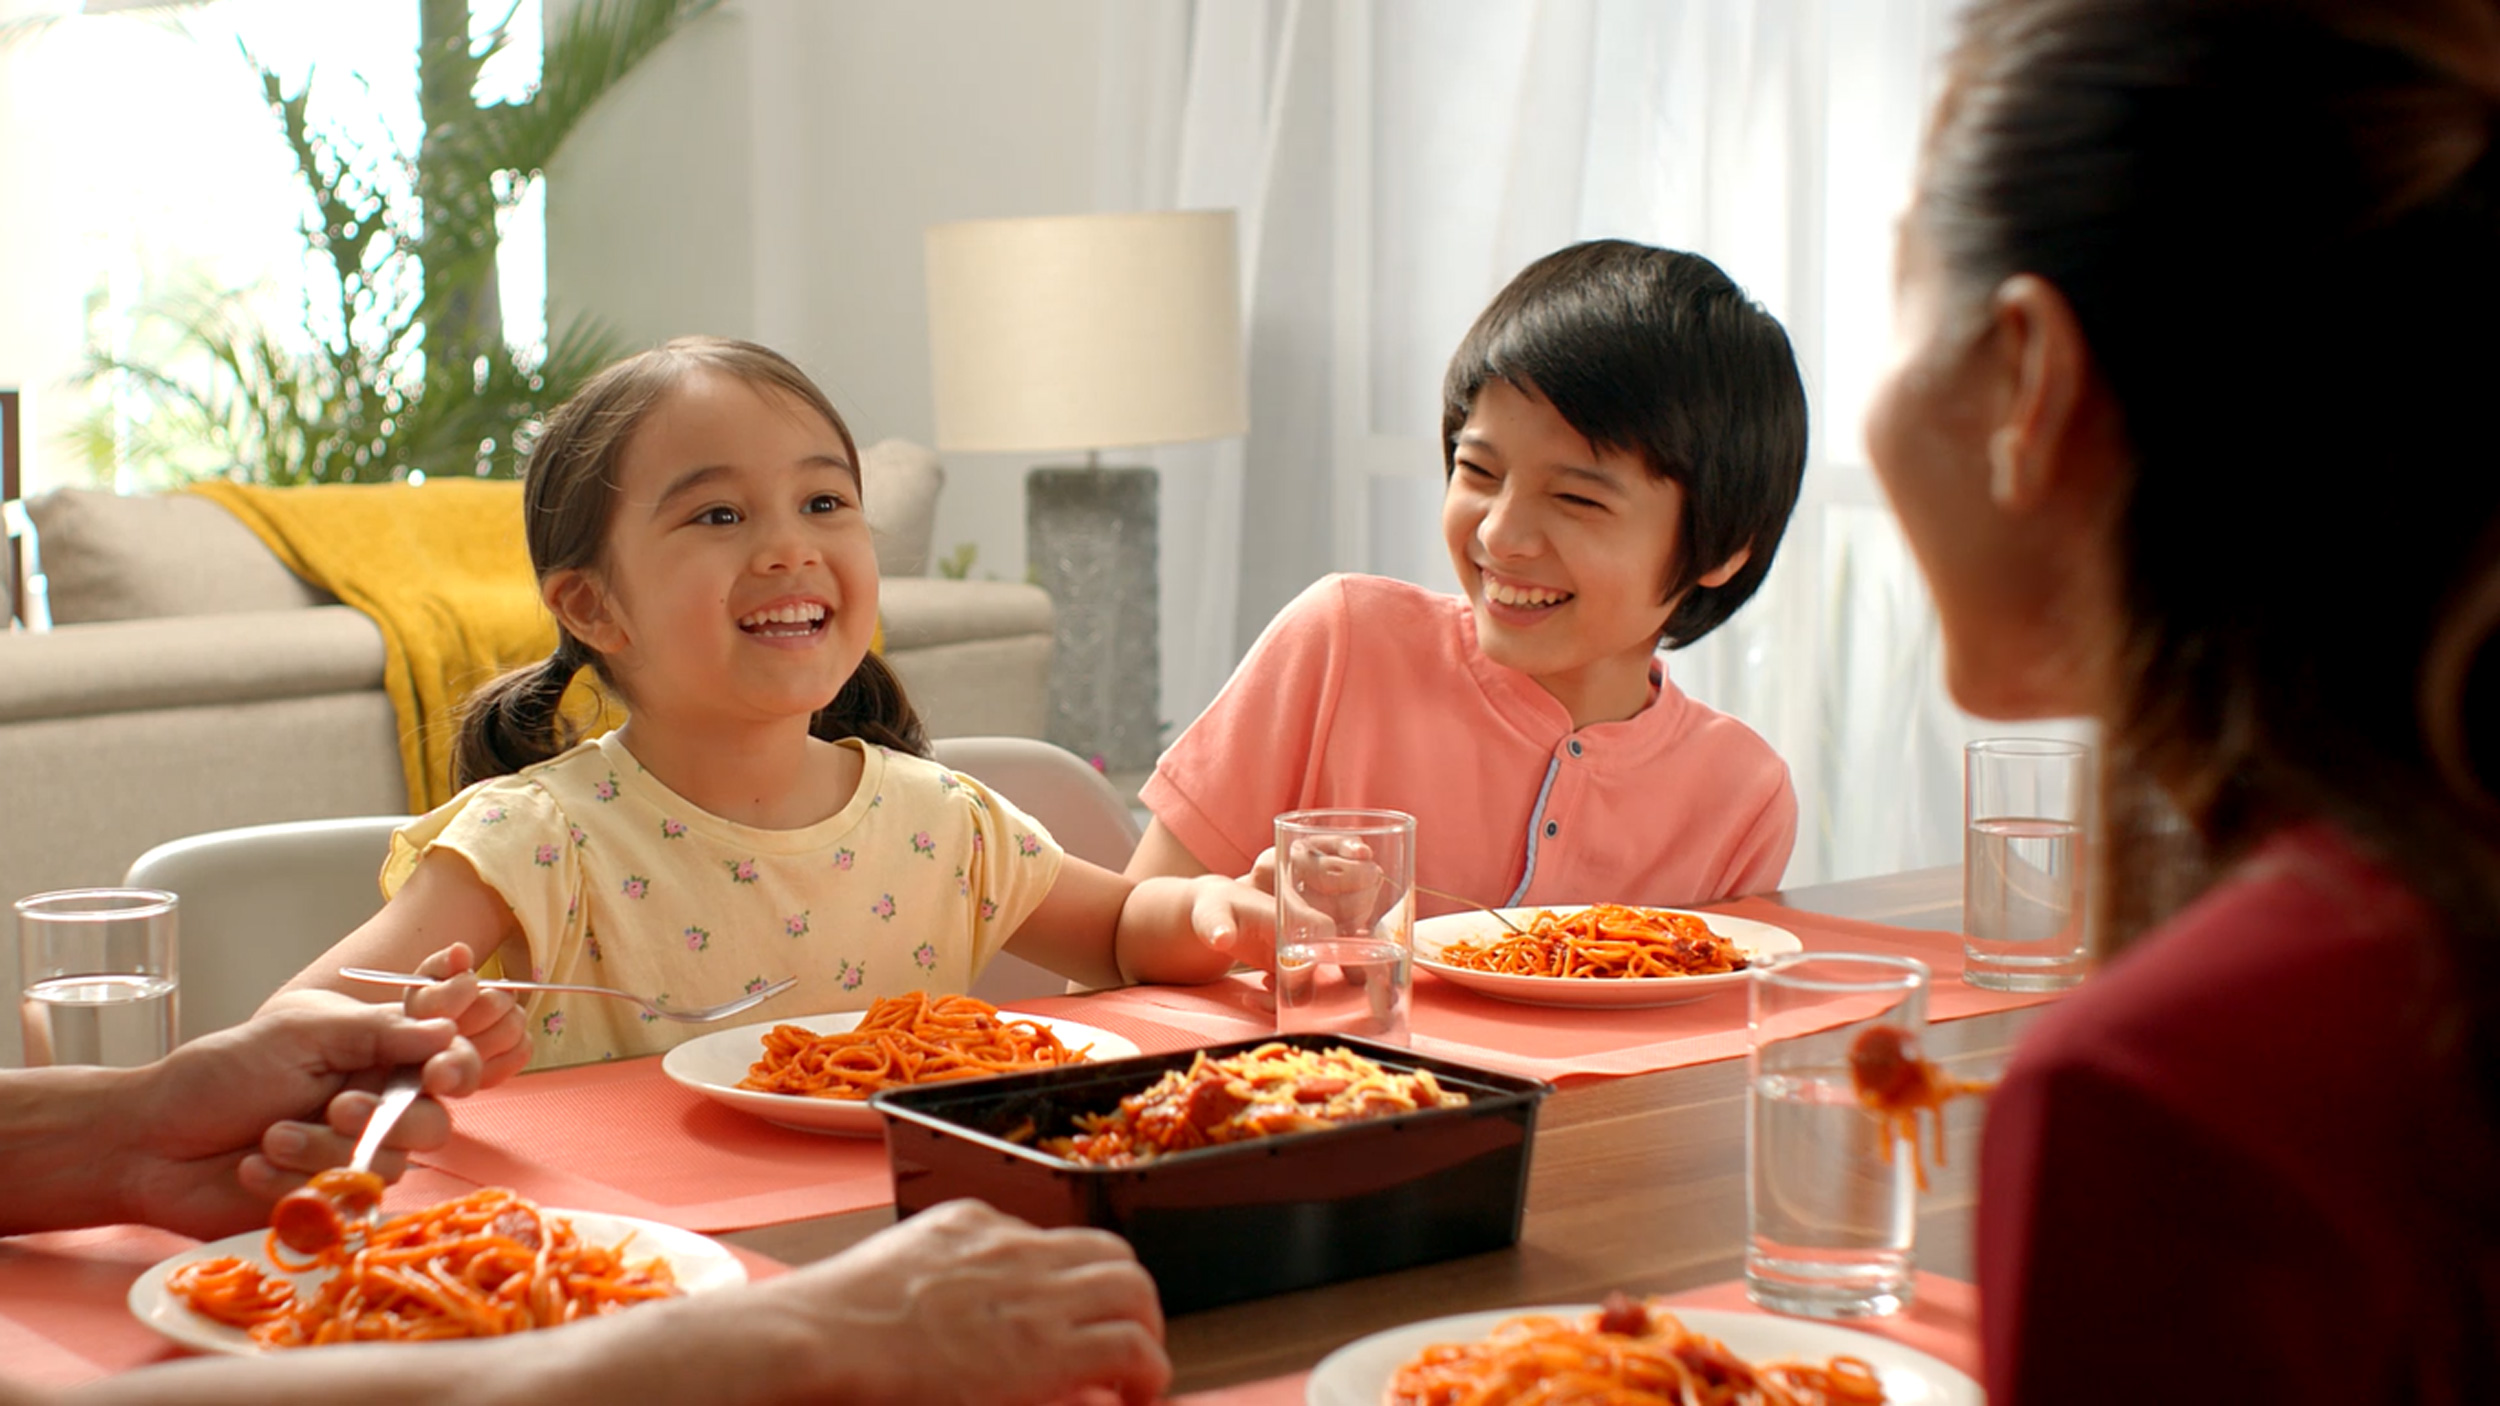 Jollibee's new ad shows how parents can make bonding time with kids more fun